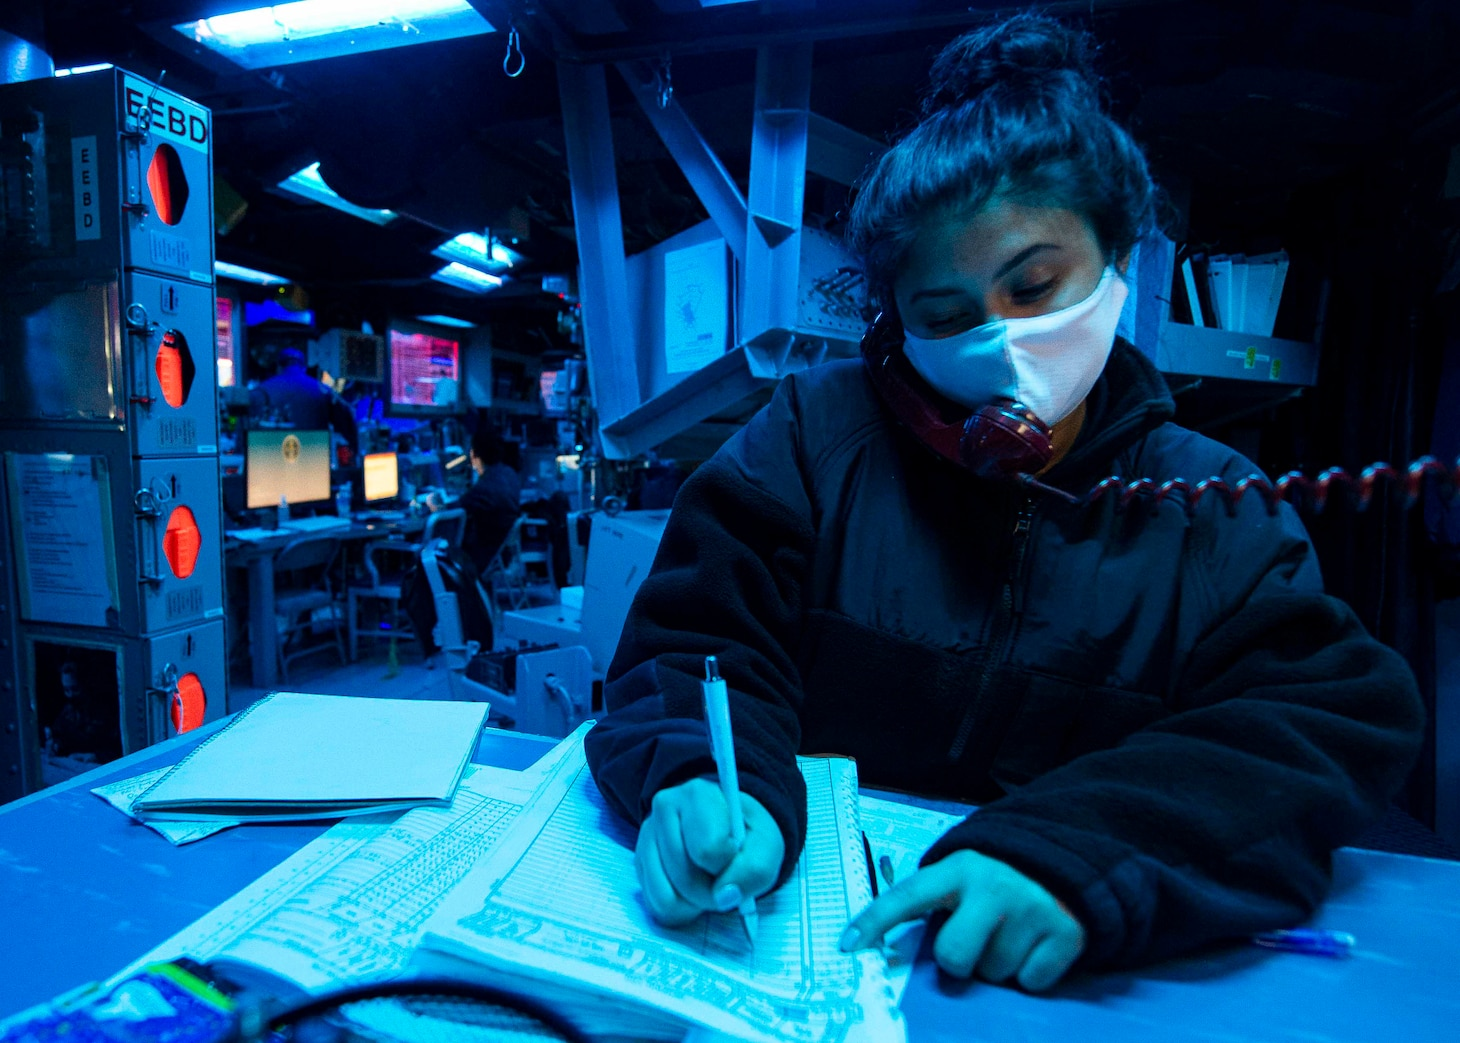 TAIWAN STRAIT (Dec. 30, 2020) Operations Specialist Seaman Jennifer Diaz, from Brooklyn, NewYork, writes in a deck log in the combat information center as guided-missile destroyer USS Curtis Wilbur (DDG 54) conducts routine operations. Curtis Wilbur is forward-deployed to the U.S. 7th Fleet area of operations in support of a free and open Indo-Pacific.